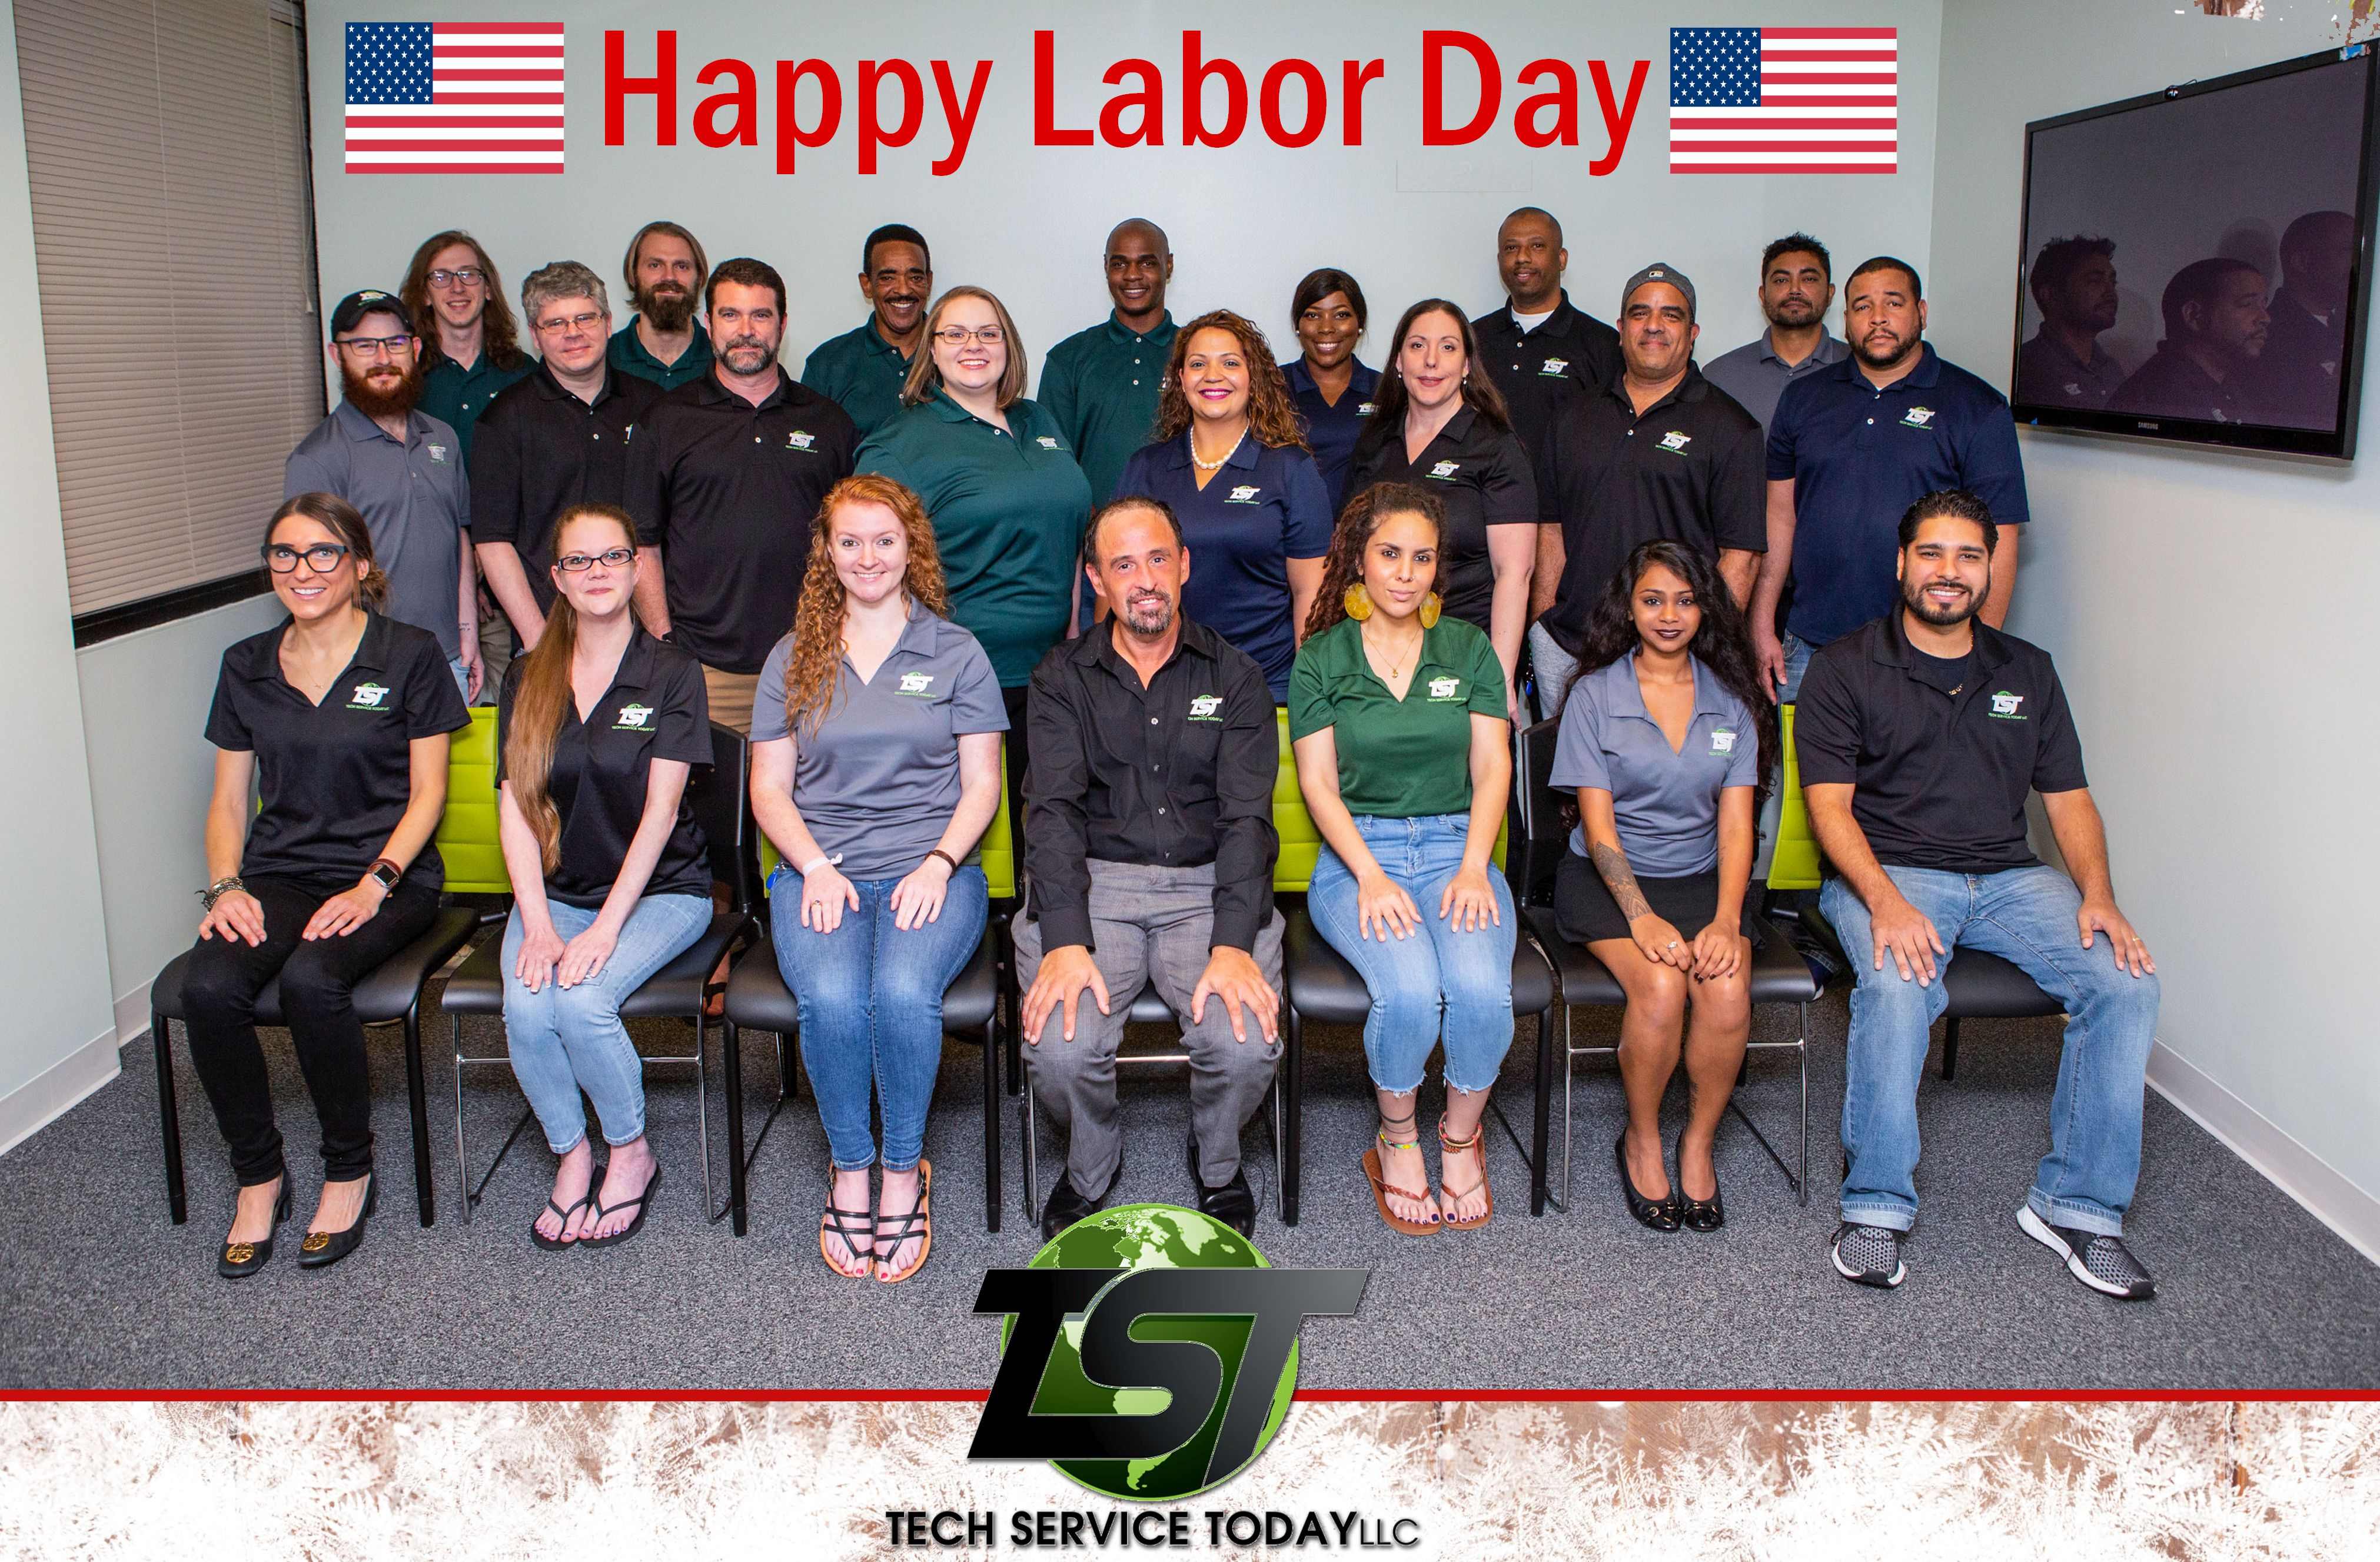 Happy Labor Day To Our Incredible Tech Service Today Team - By Consistently Providing Superior Customer Service In The Delivery Of On-Site IT & Telecom Services Nationwide